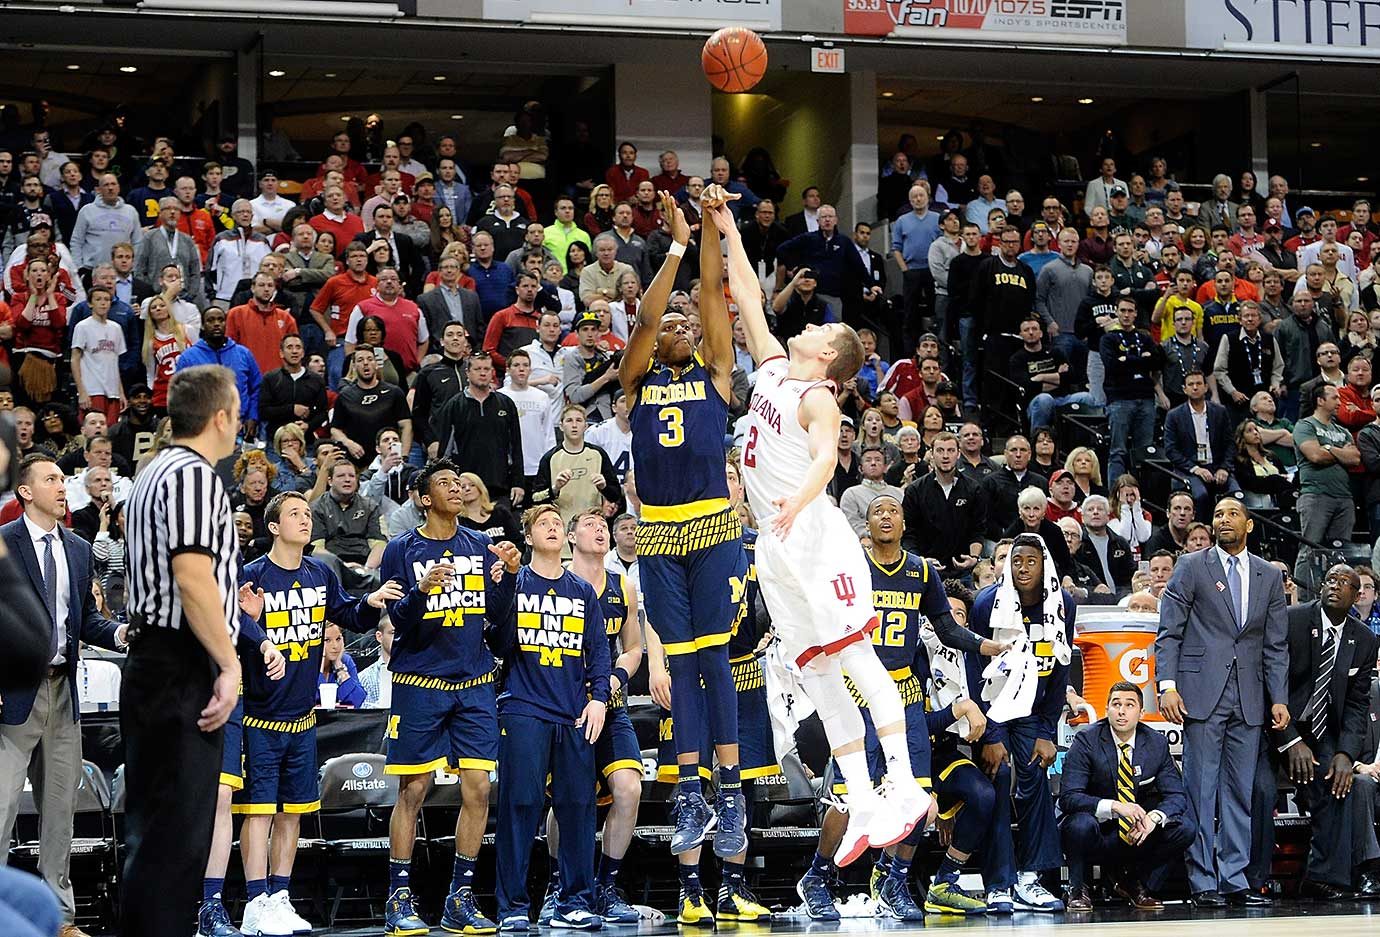 Kameron Chatman may have shot Michigan into the NCAA tournament with his game-winning three against Indiana.